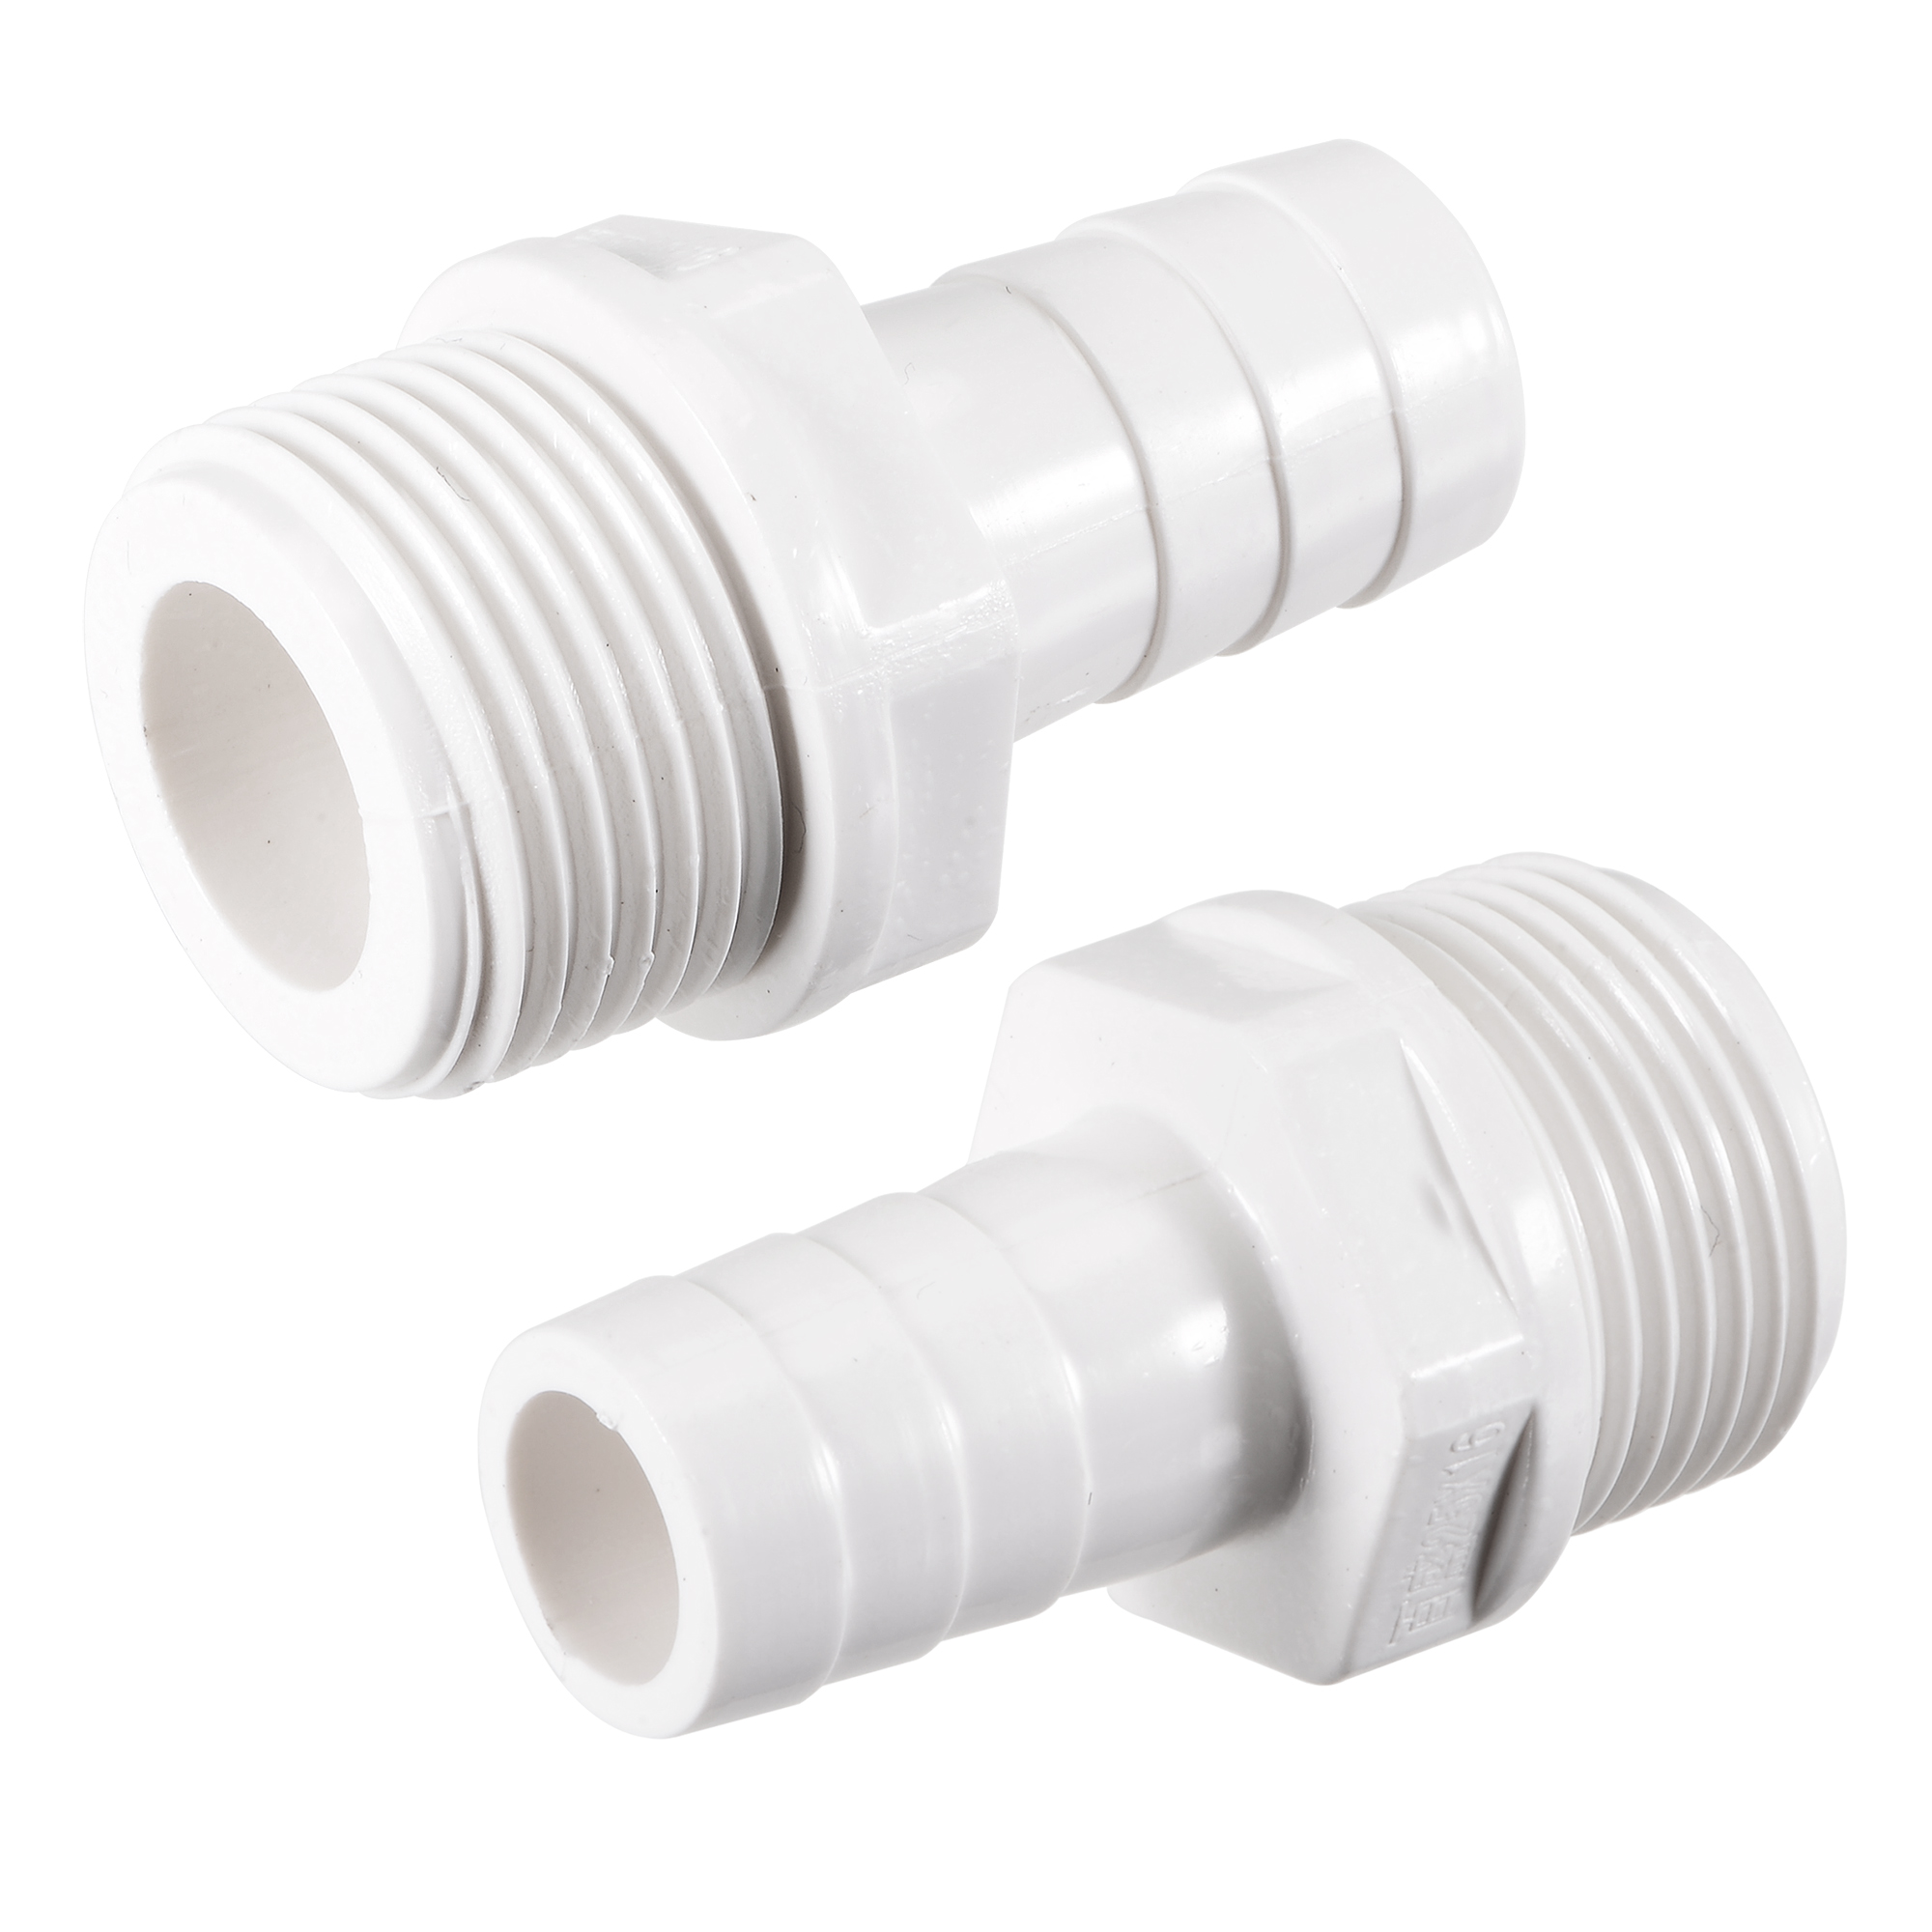 PVC Tube Fitting Adapter 16mm Barbed x G3/4 Male White for Aquariums 2Pcs